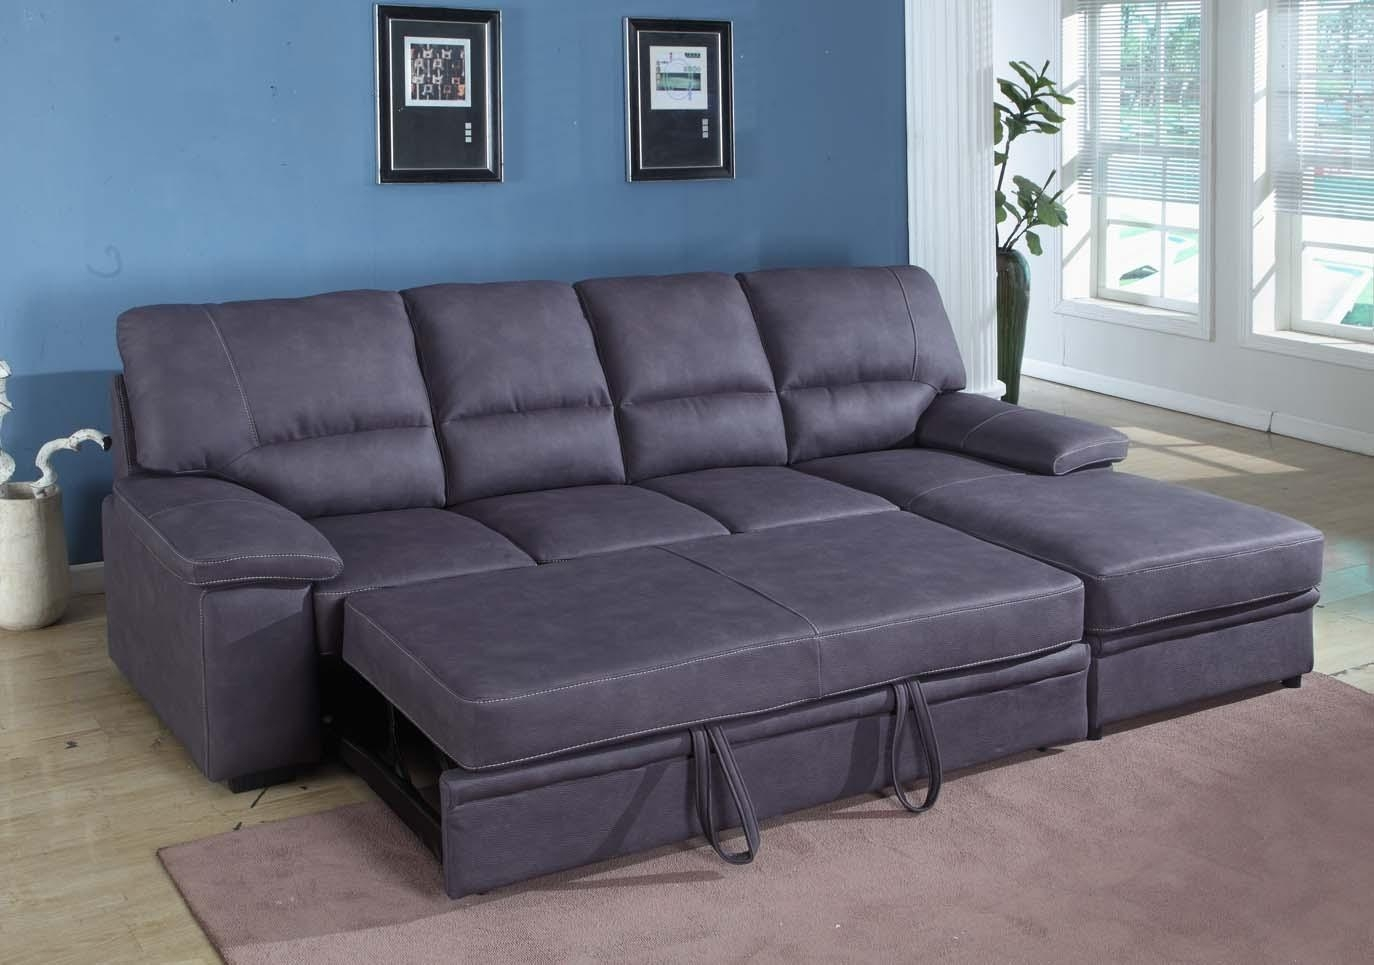 Sofas Center : Sectionalofaleeper Leatherleepersectionalleepers Intended For Sleeper Recliner Sectional (View 10 of 20)